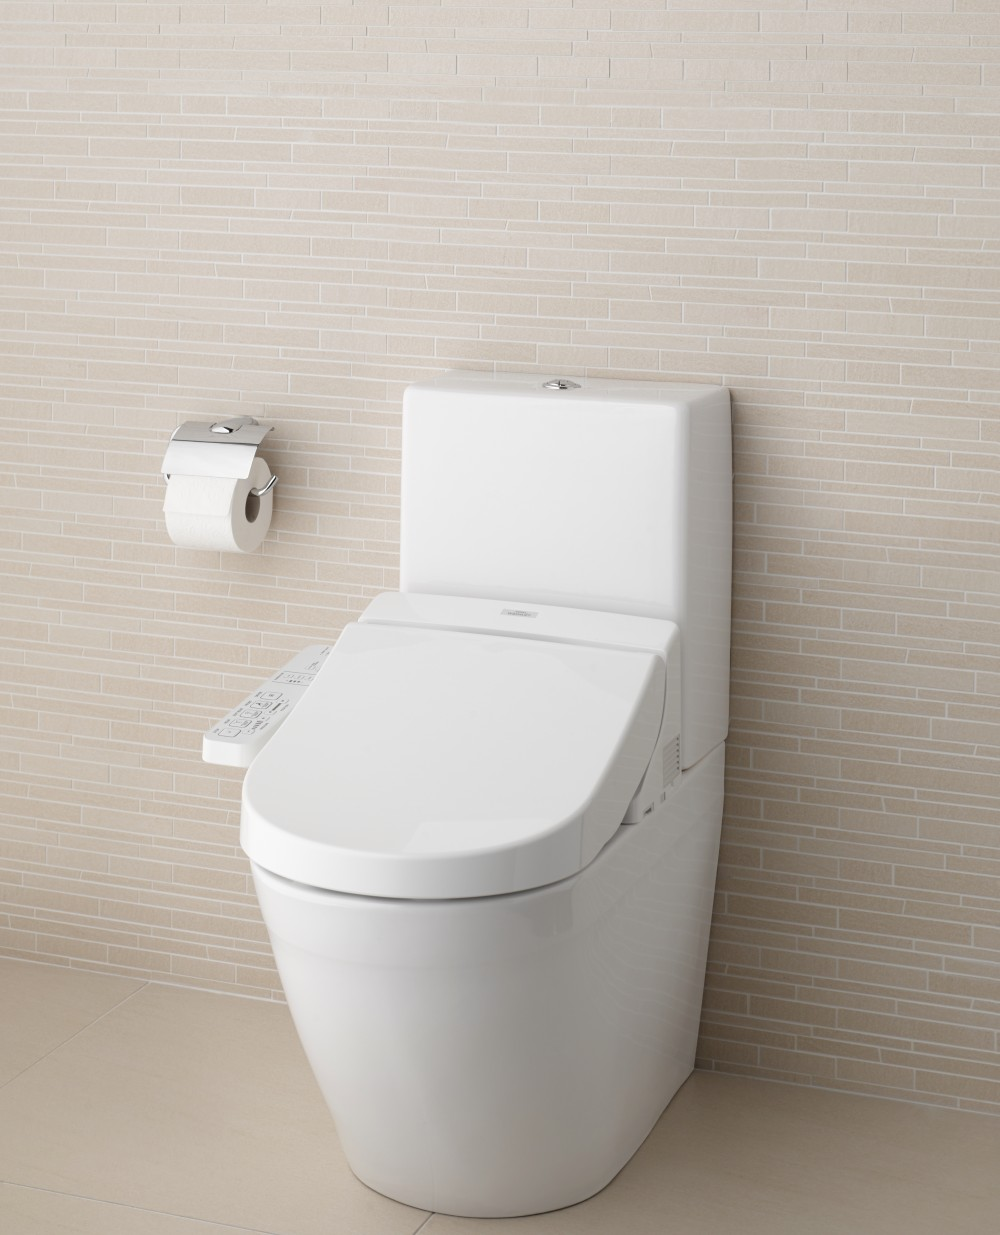 Image Result For Bidet Toilet Seat With Warm Water And Warm Air Dryer